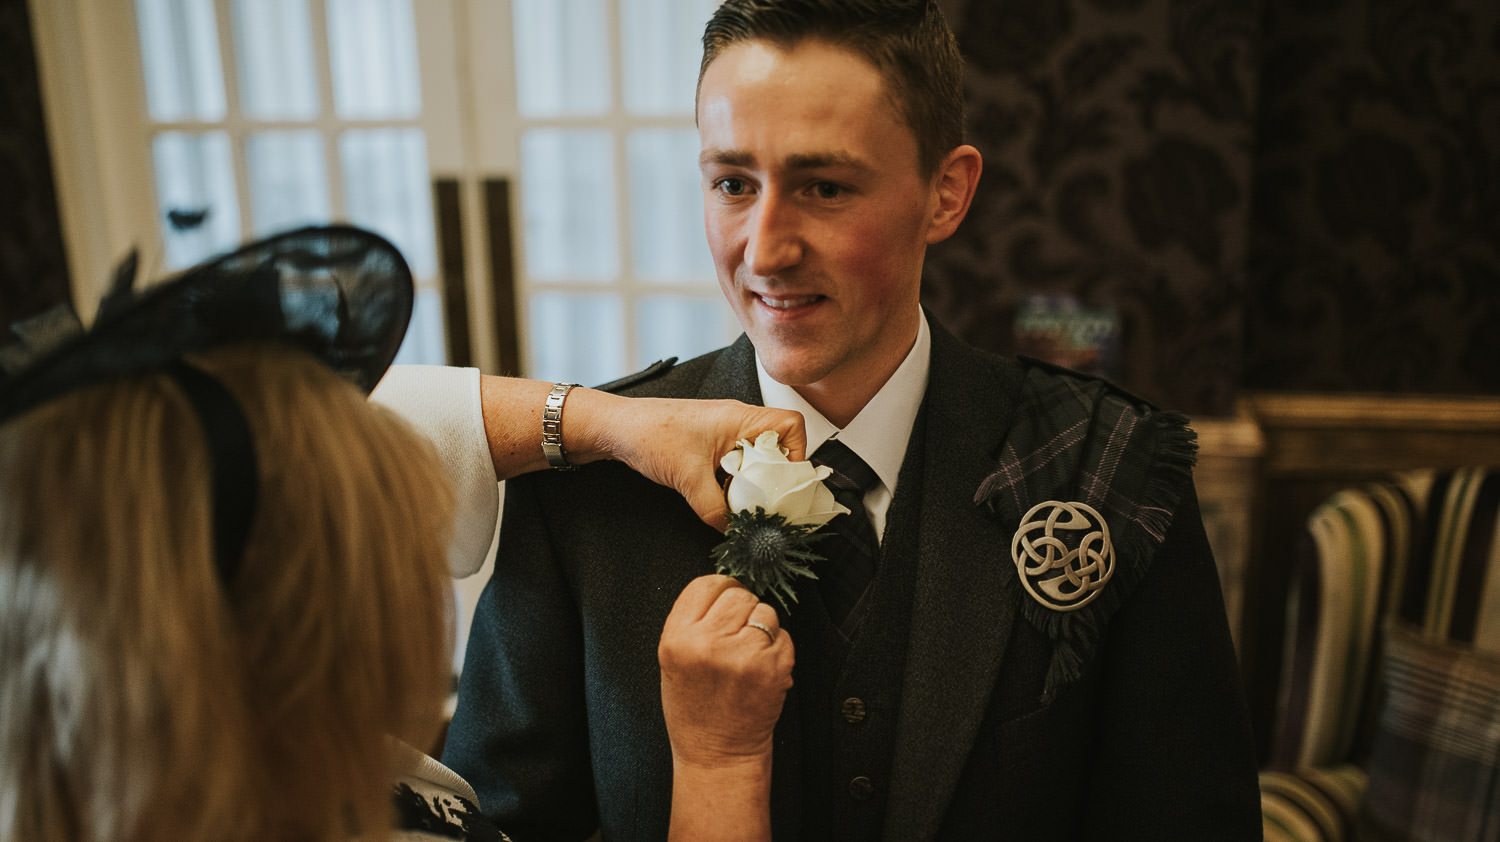 country wedding groom getting buttonhole fitted